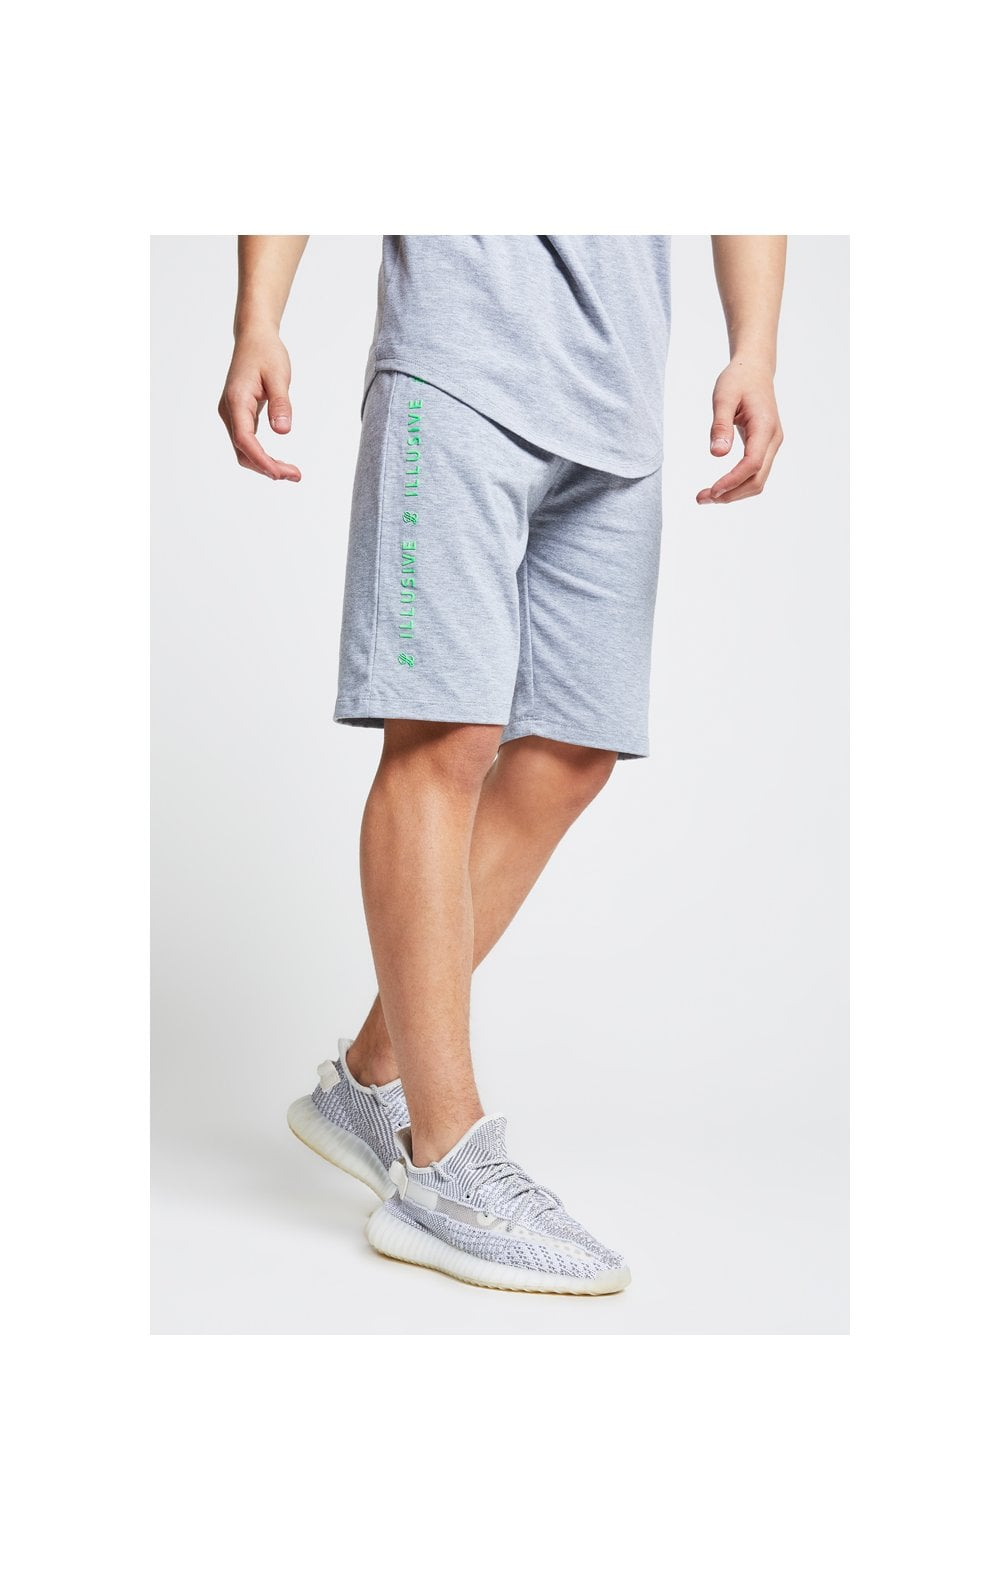 Illusive London Tape Jersey Shorts - Grey & Neon Green